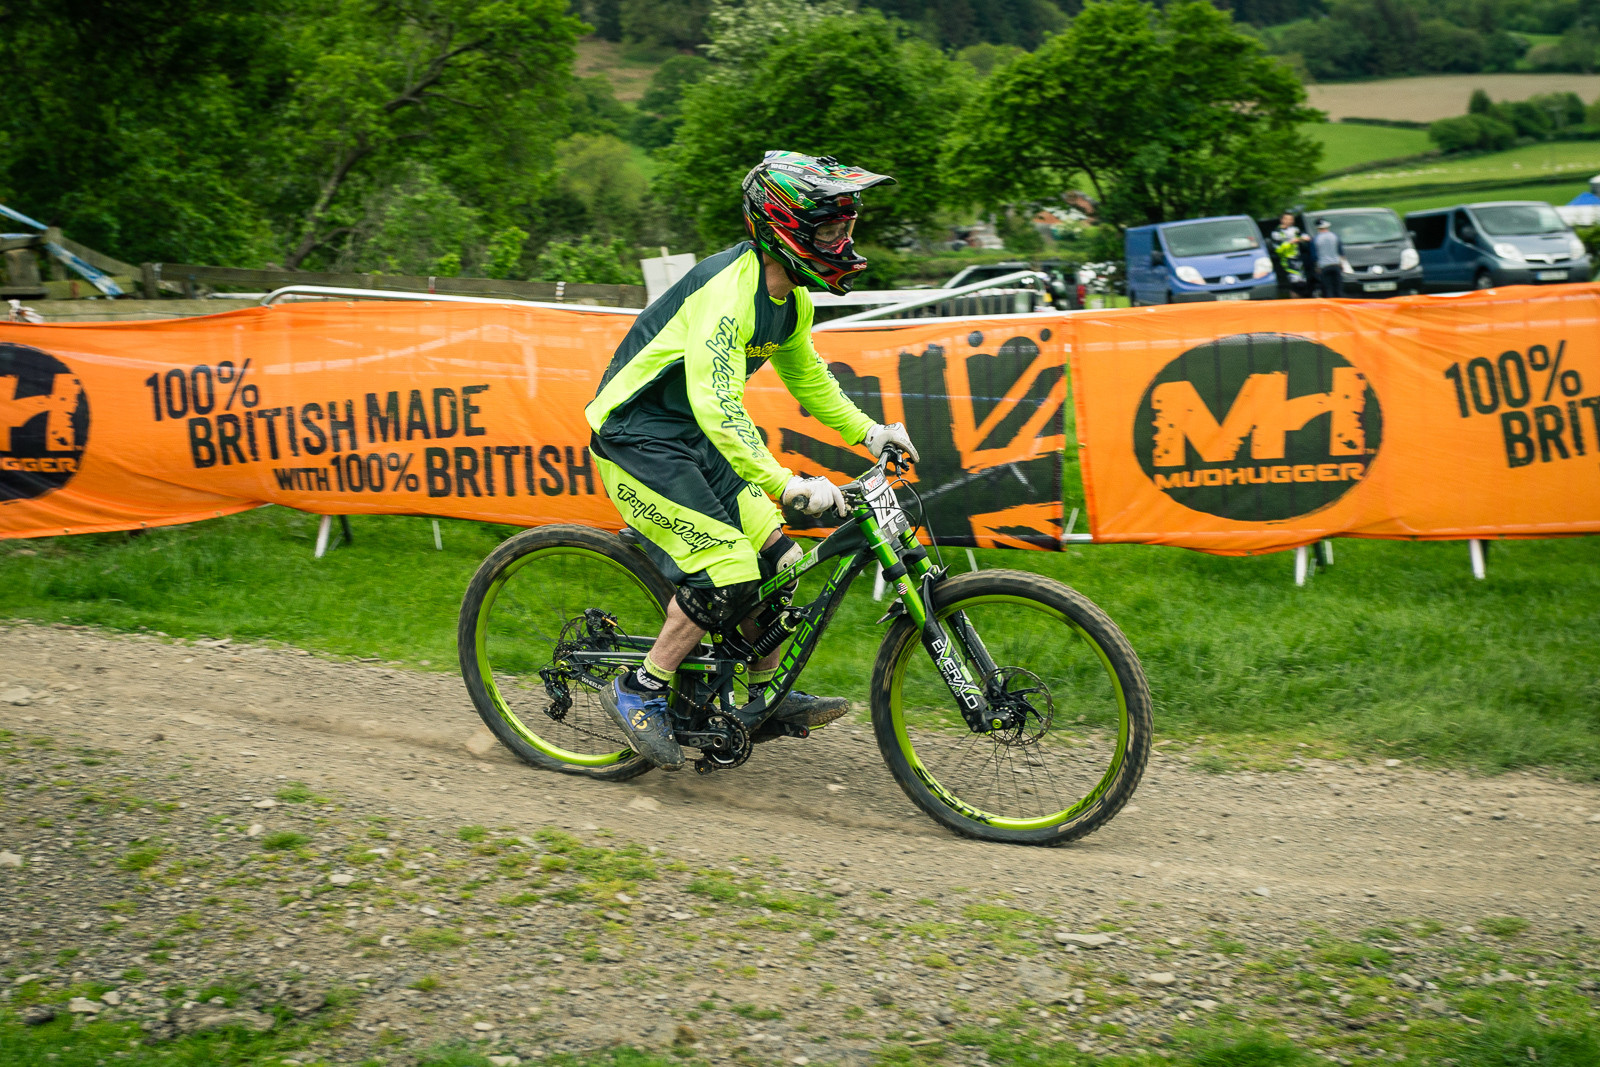 Intense 951 EVO G-ed Out at Llangollen - G-Out Project - Llangollen BDS 2015 - Mountain Biking Pictures - Vital MTB